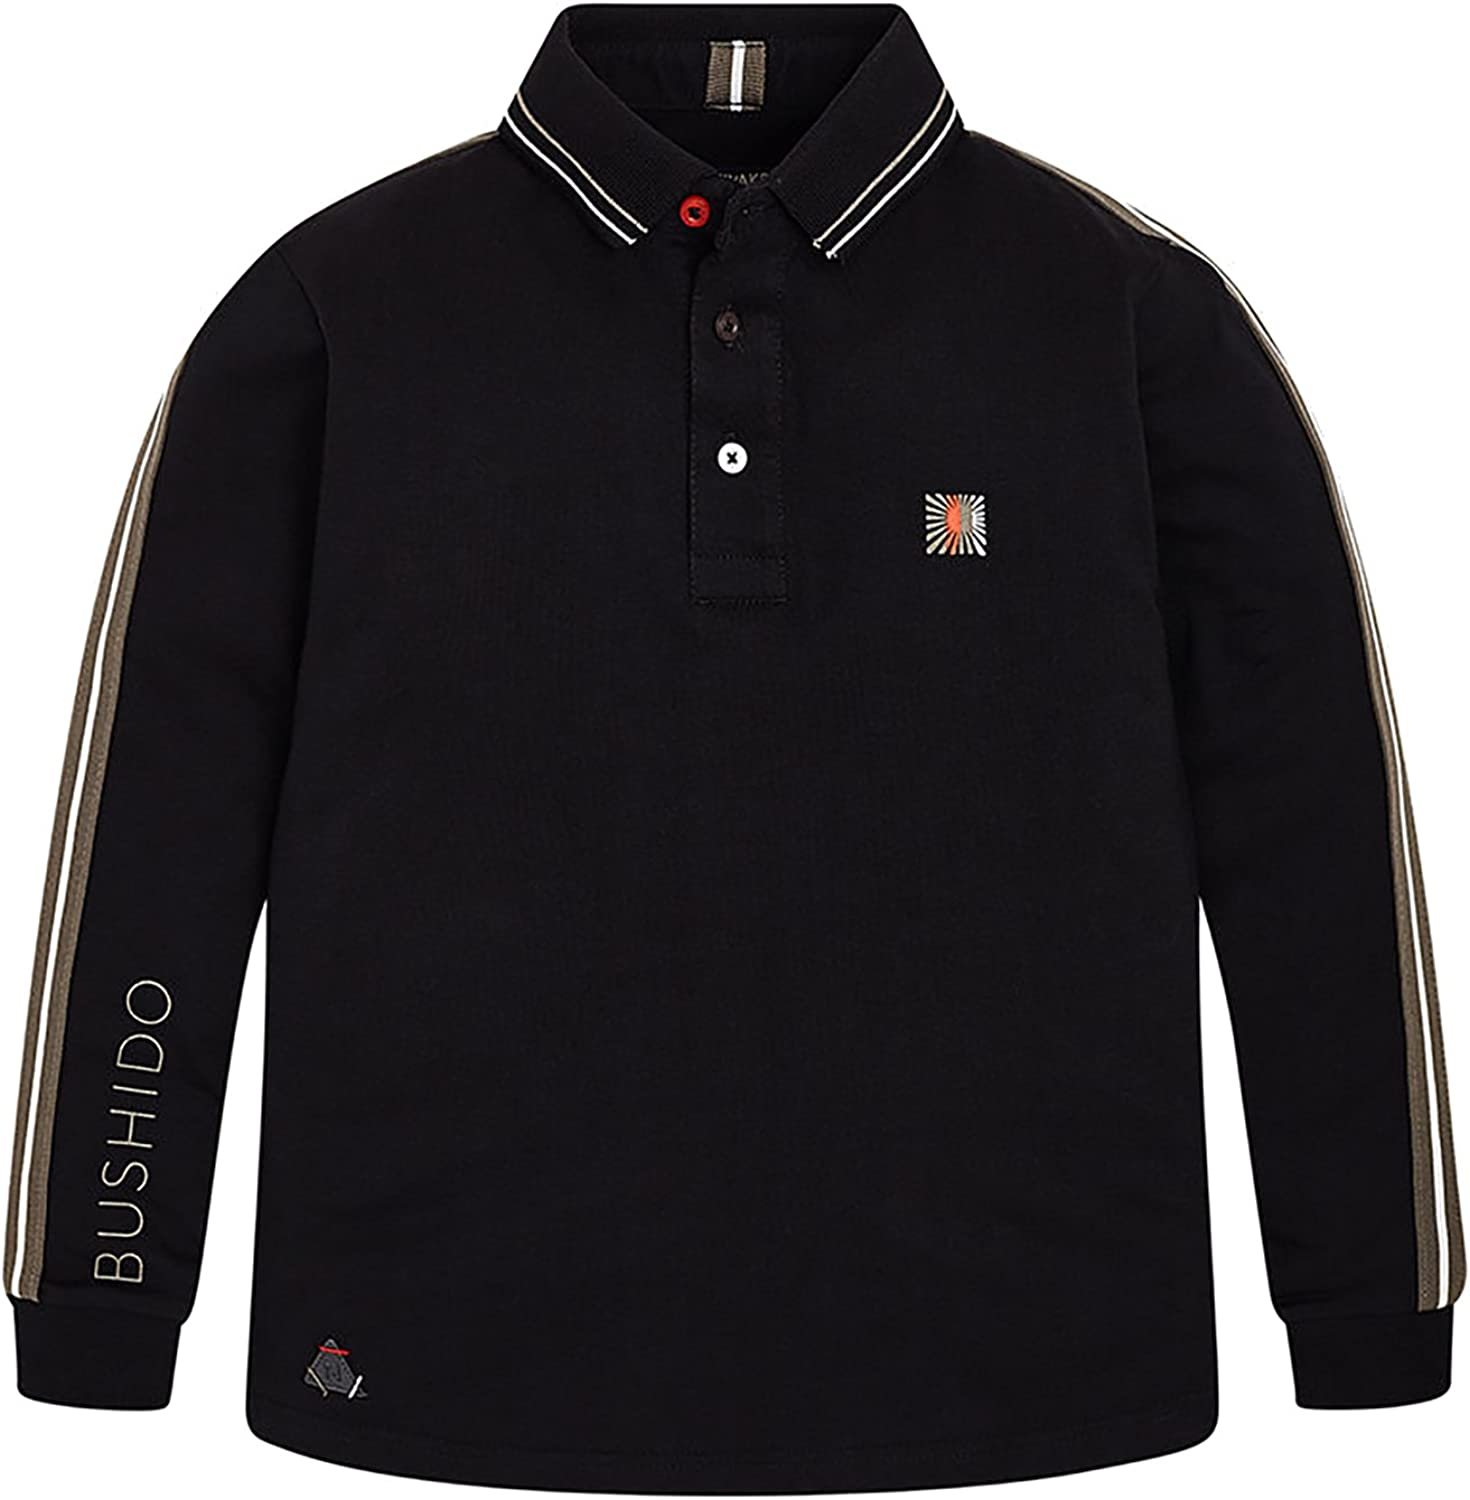 Mayoral - L/s Polo for Boys - 7106, Black